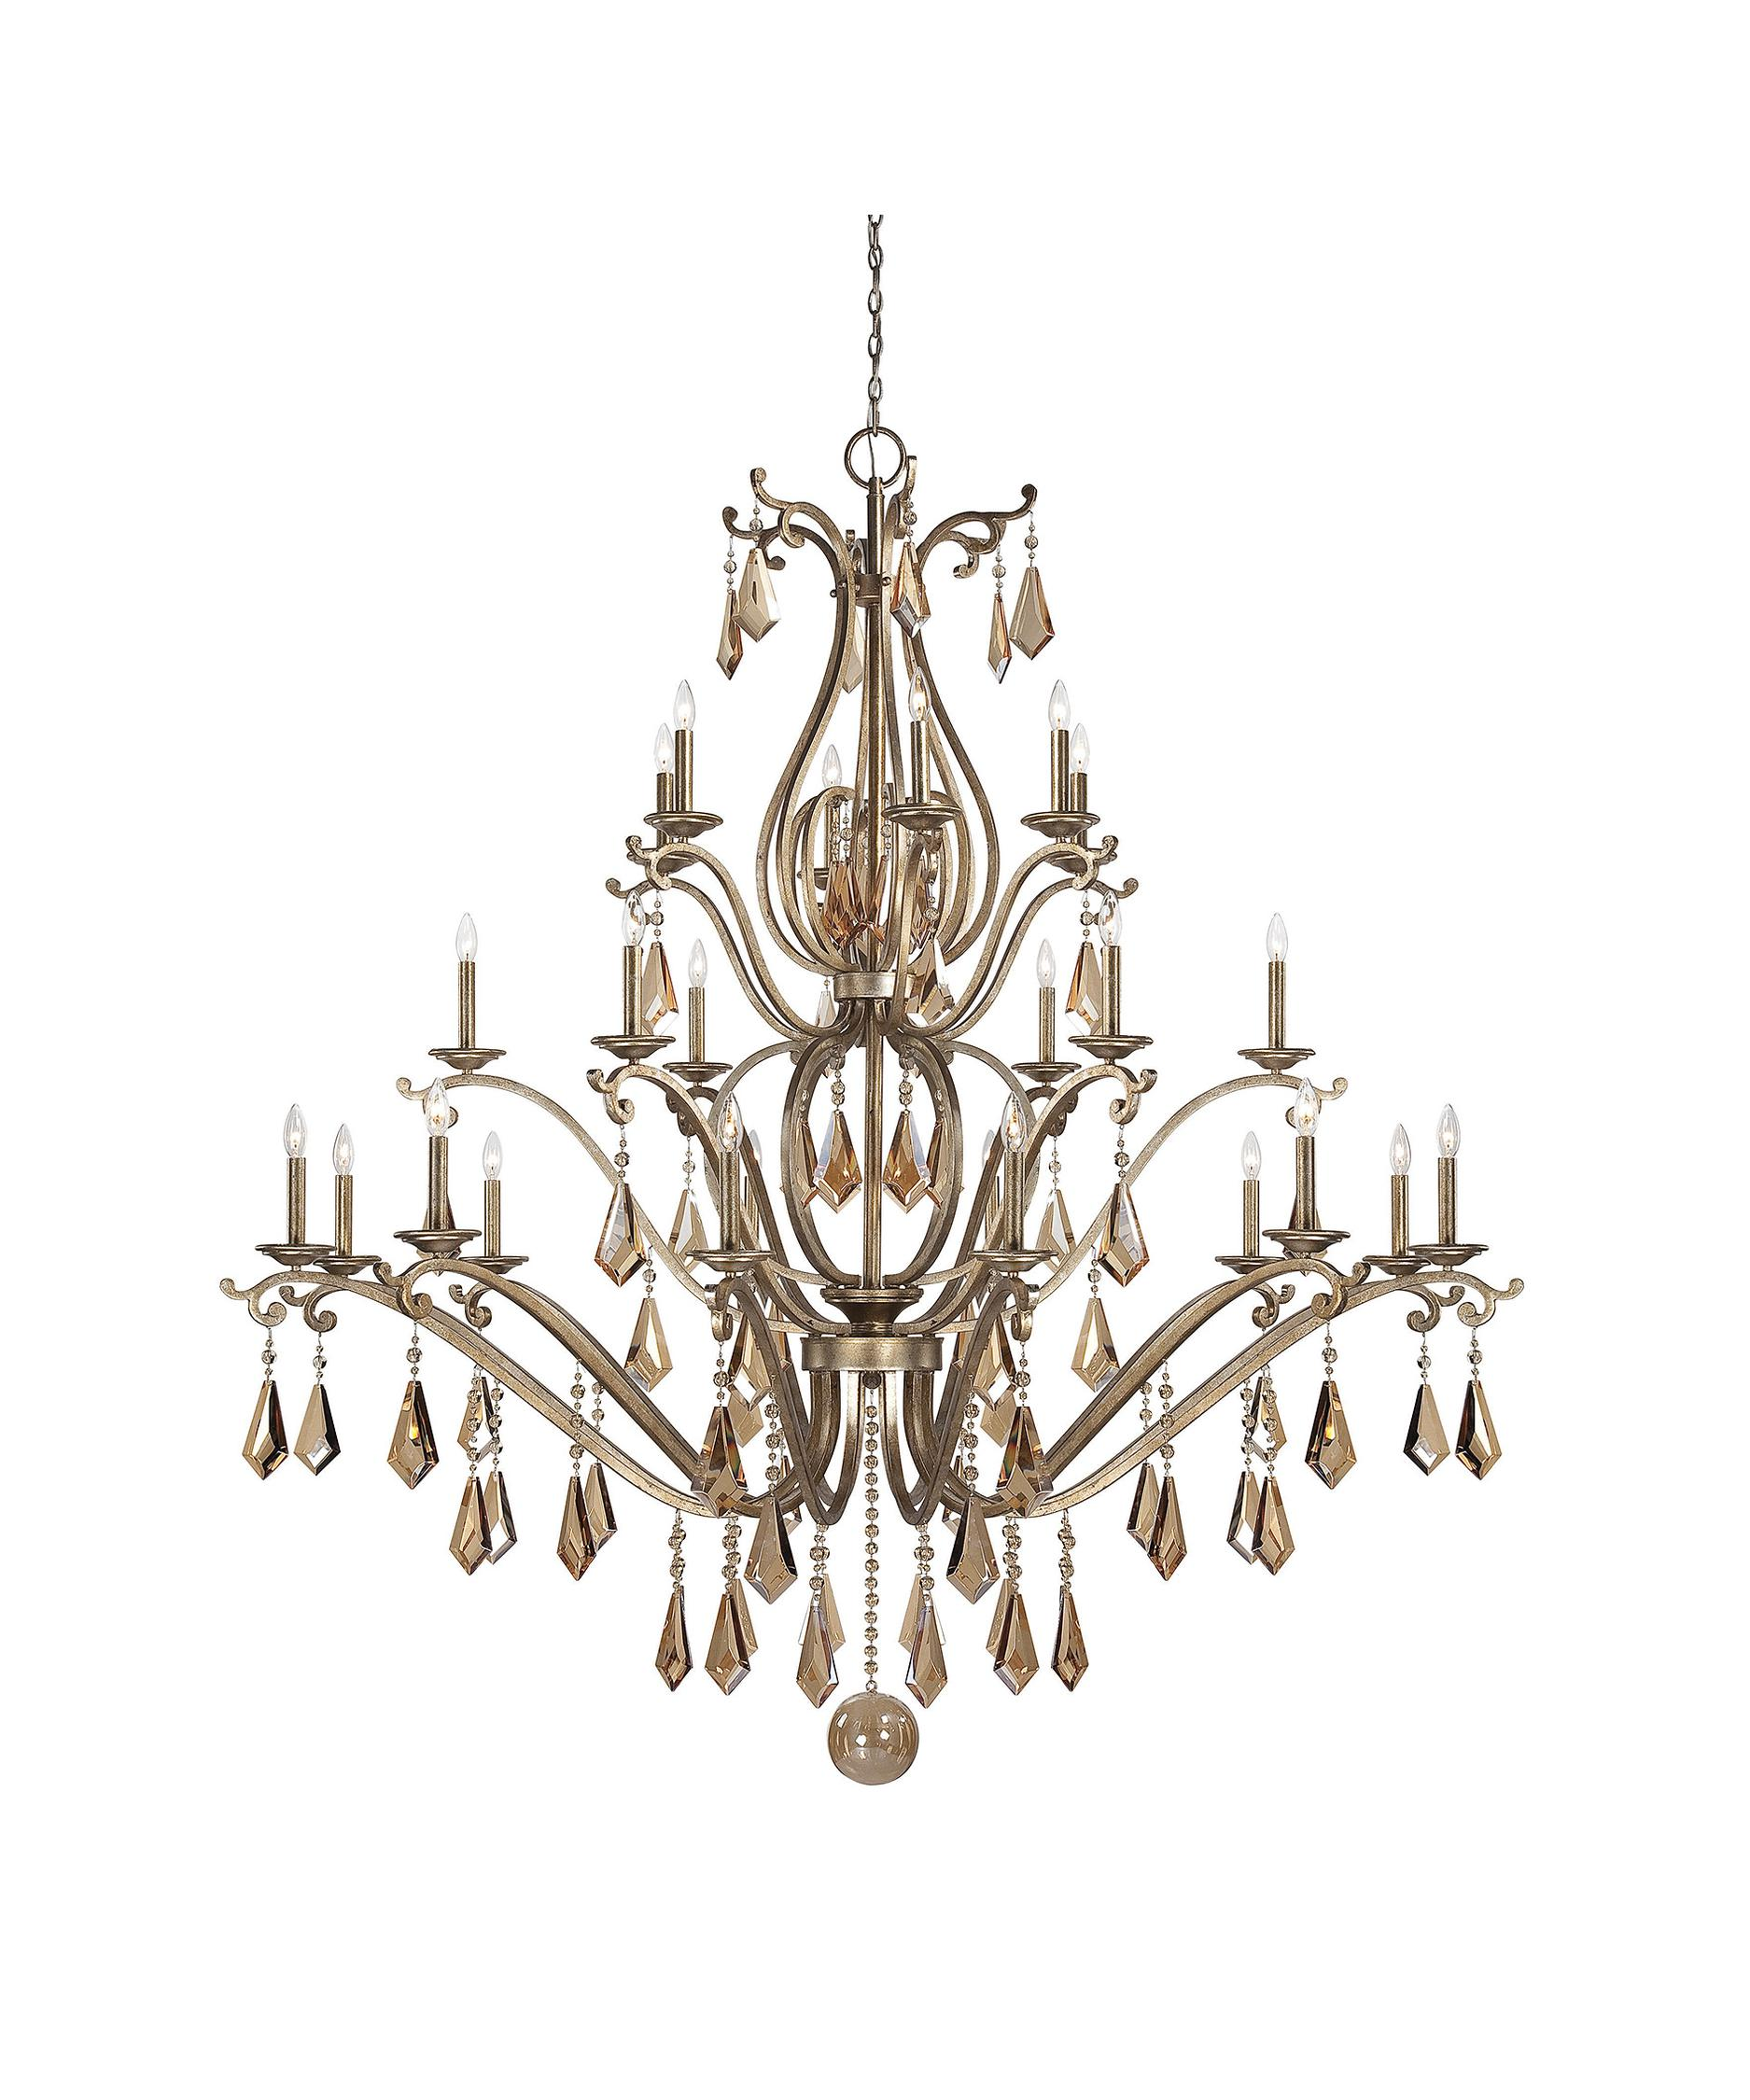 shown in oxidized silver finish and champagne crystal - Savoy Lighting